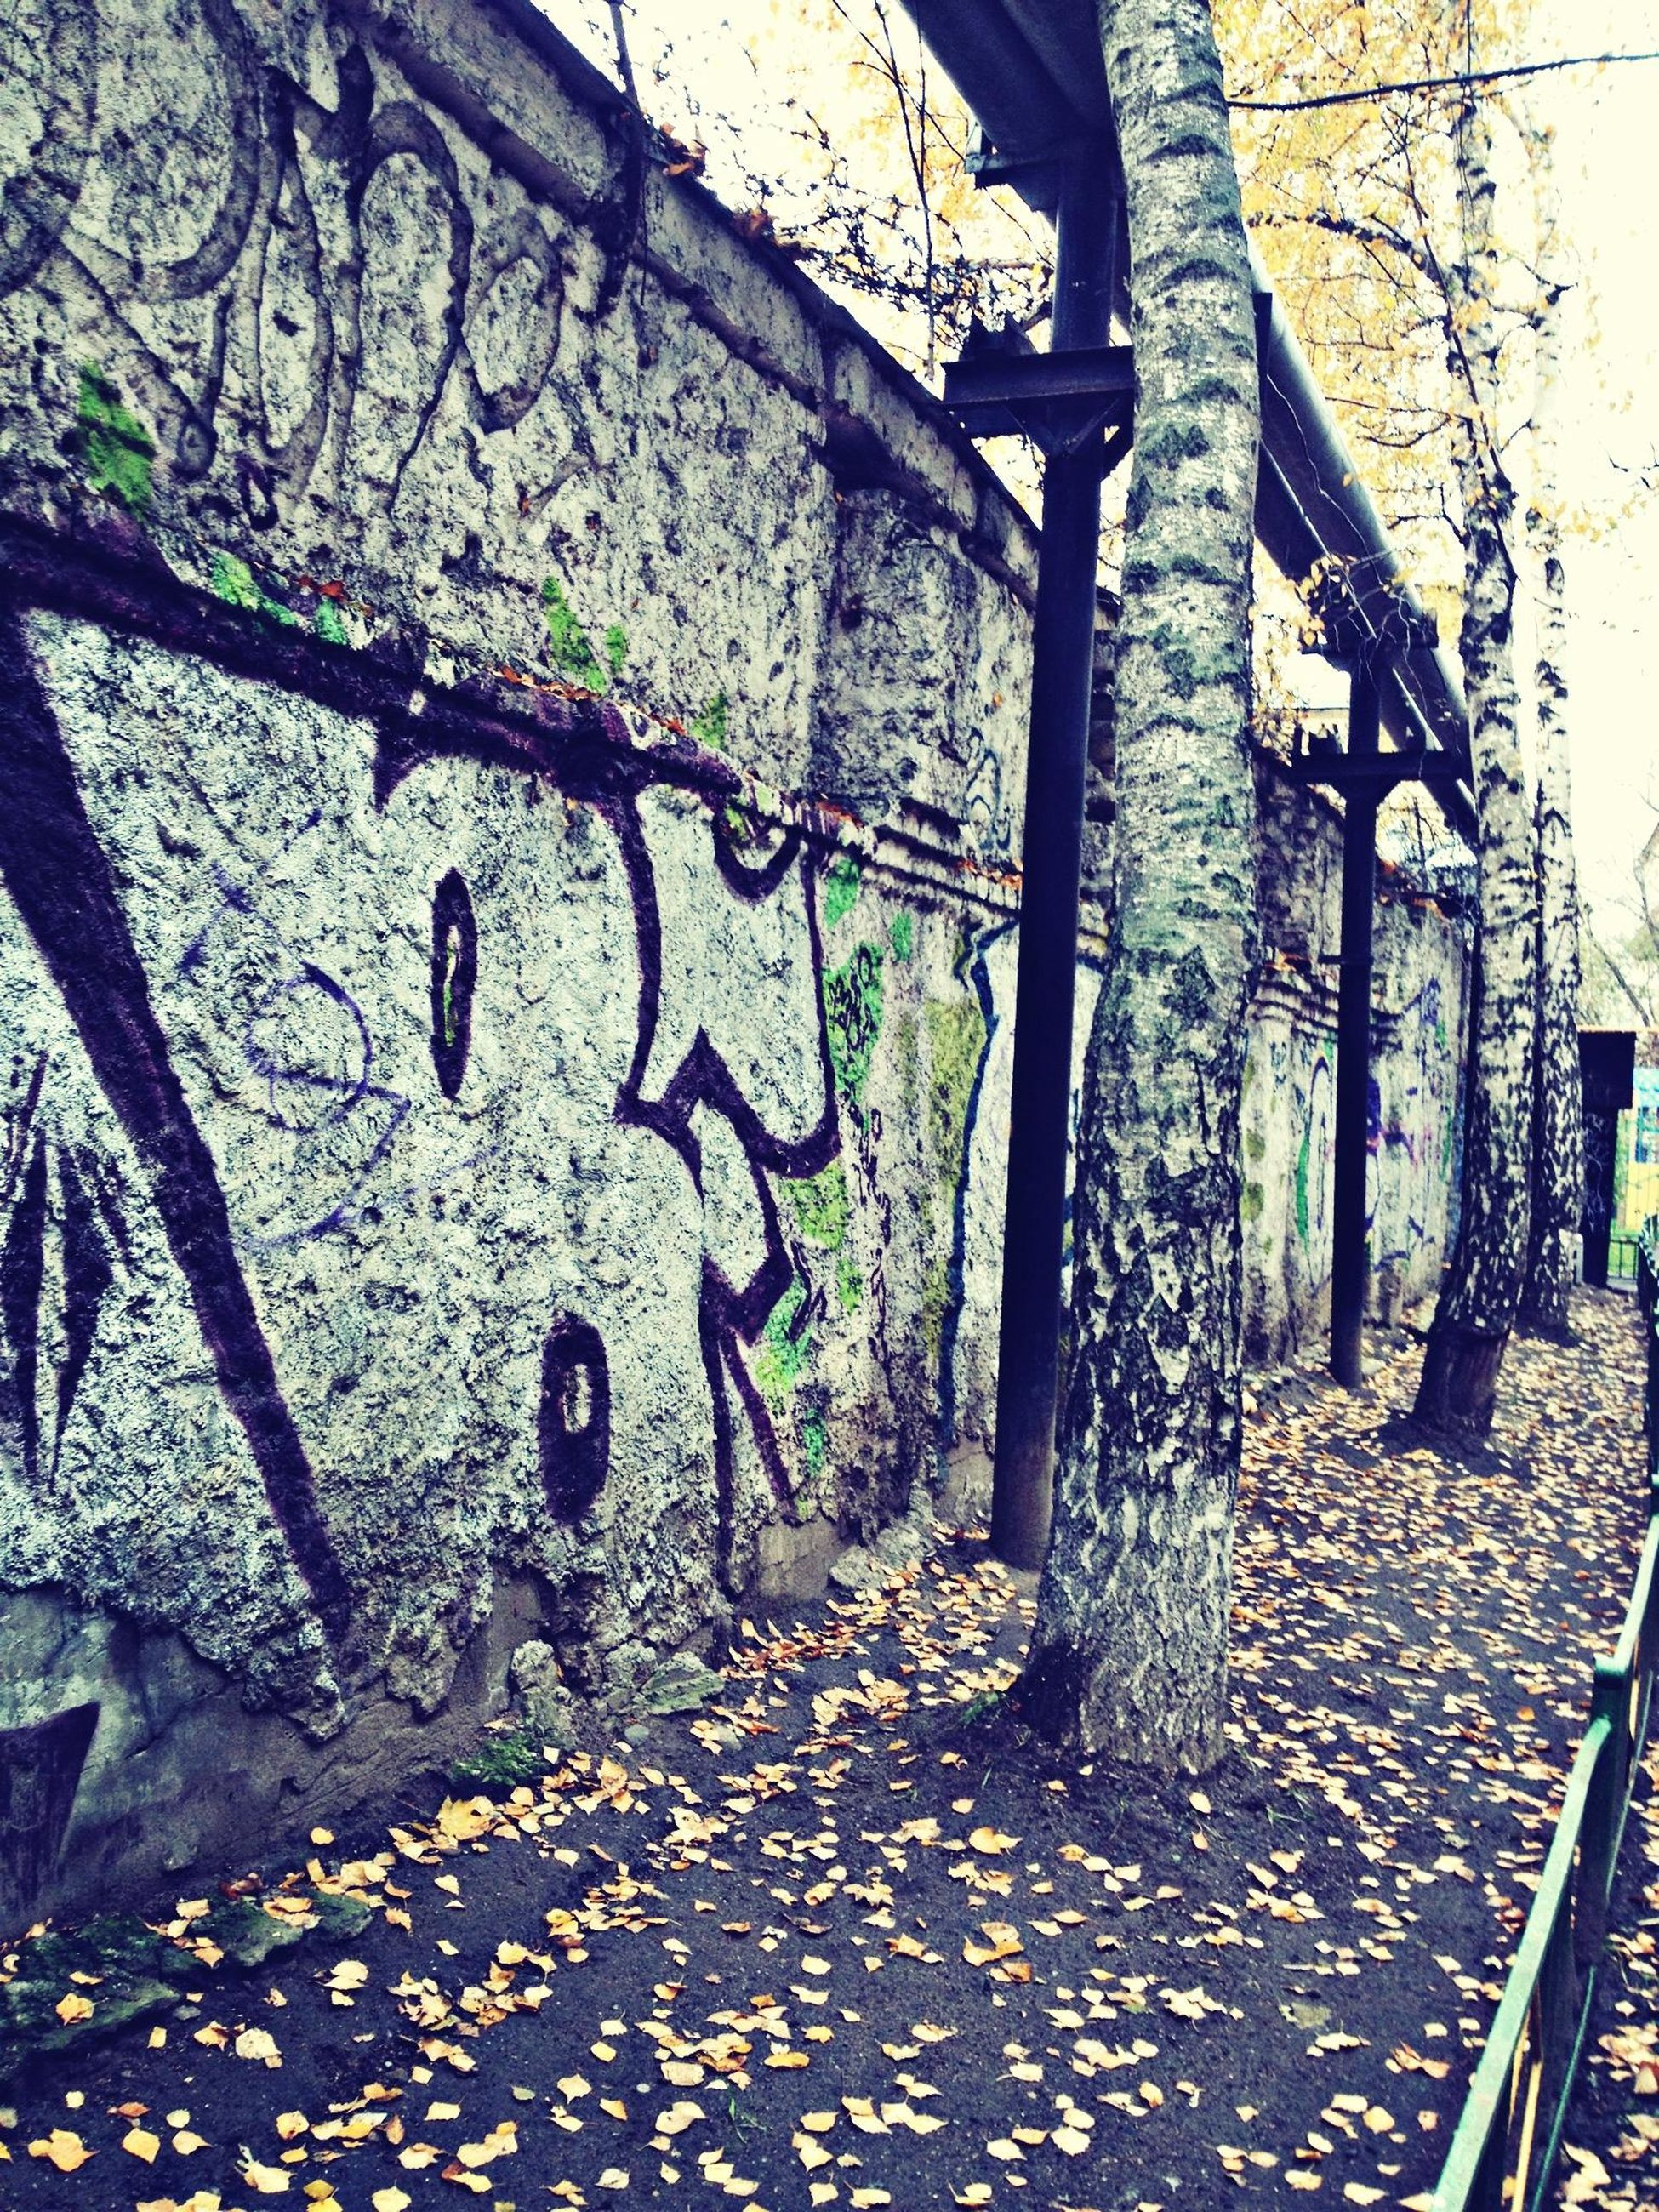 graffiti, art, creativity, wall - building feature, art and craft, text, day, western script, wall, plant, outdoors, street art, messy, communication, no people, abandoned, human representation, built structure, leaf, damaged